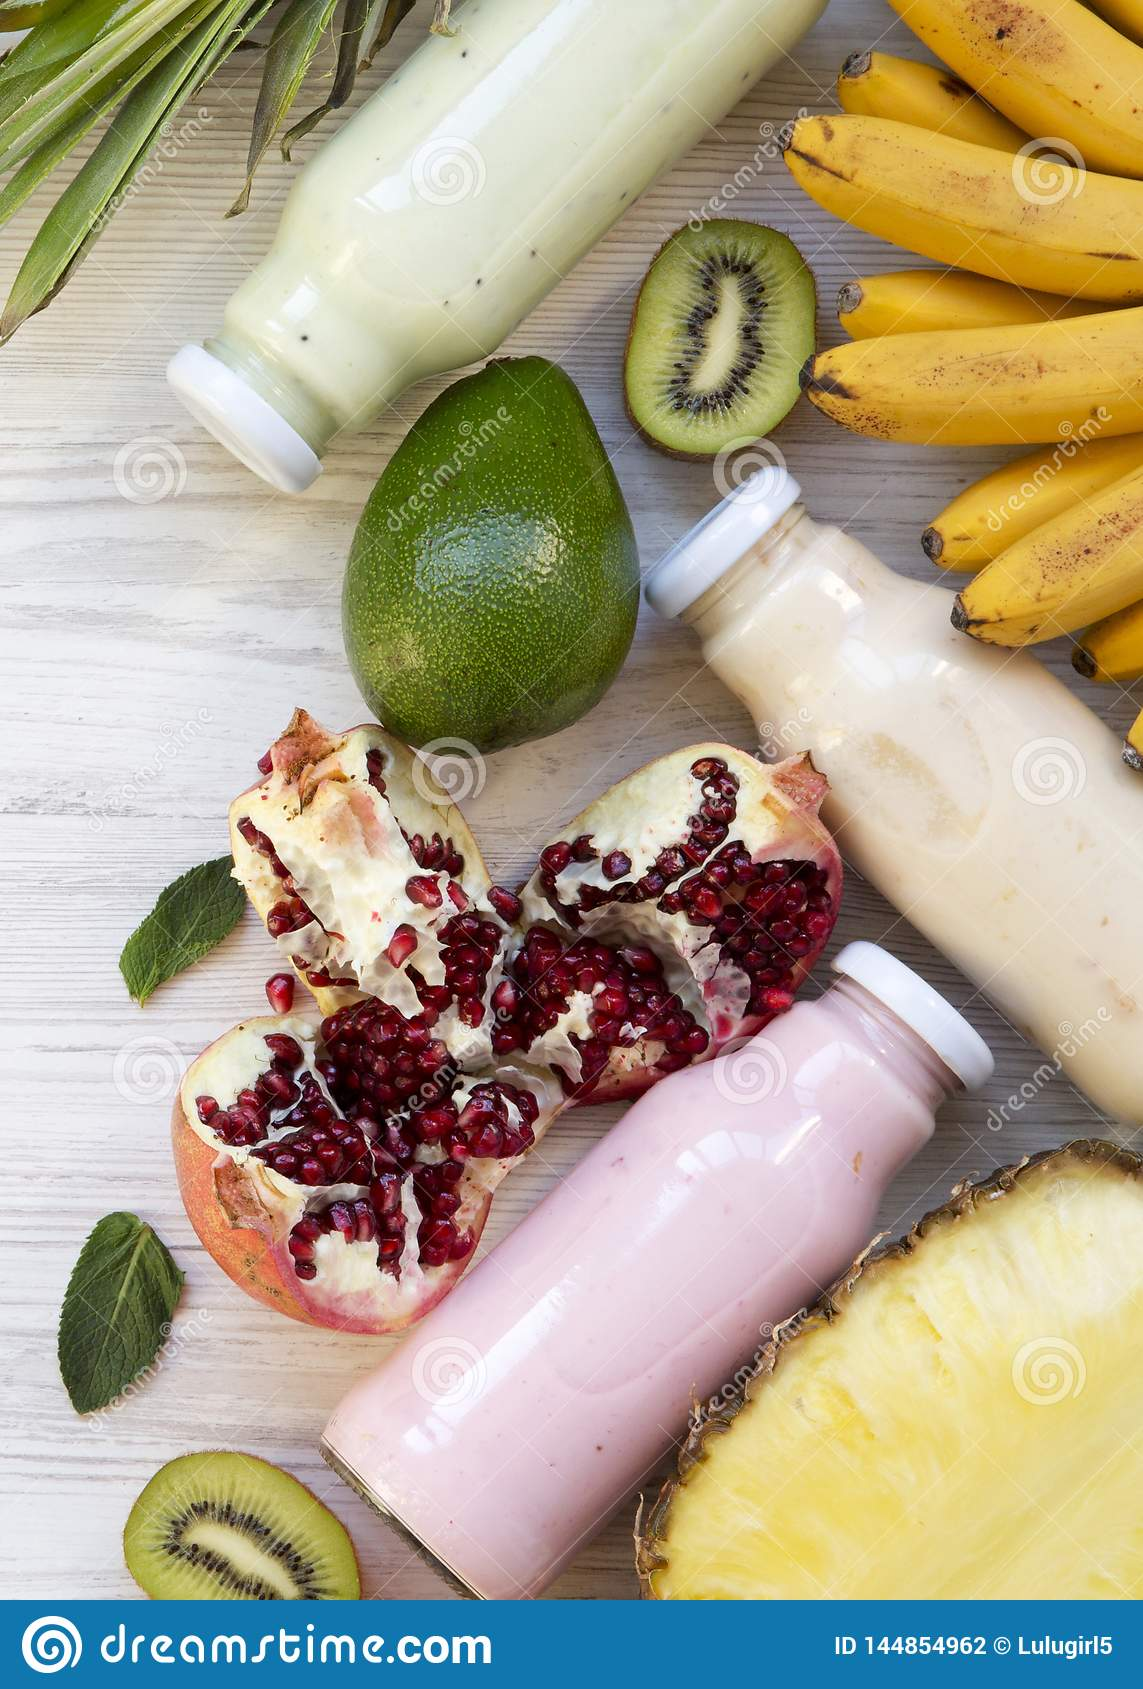 Fruit smoothies or milkshake of various colors in glass jars with colorful fruits on white wooden background, top view. From above